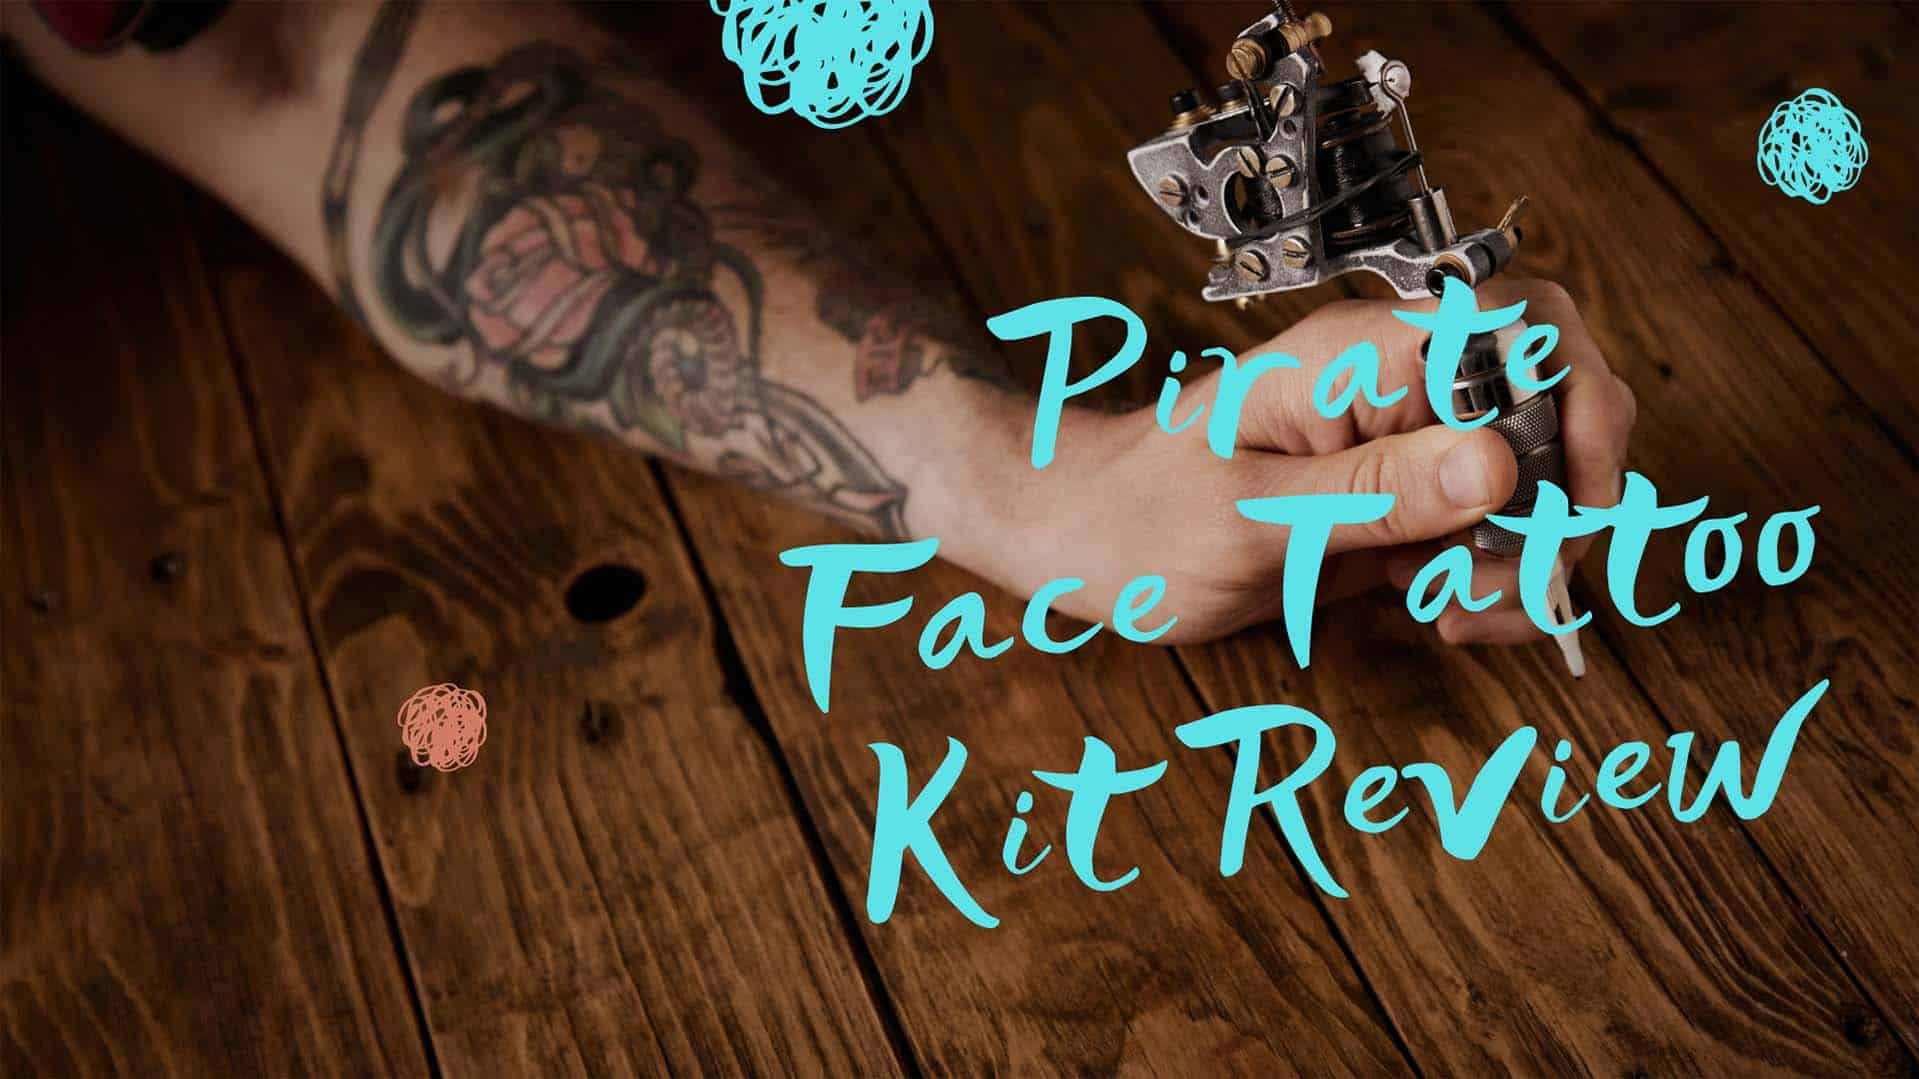 Pirate Face Tattoo Kit Review